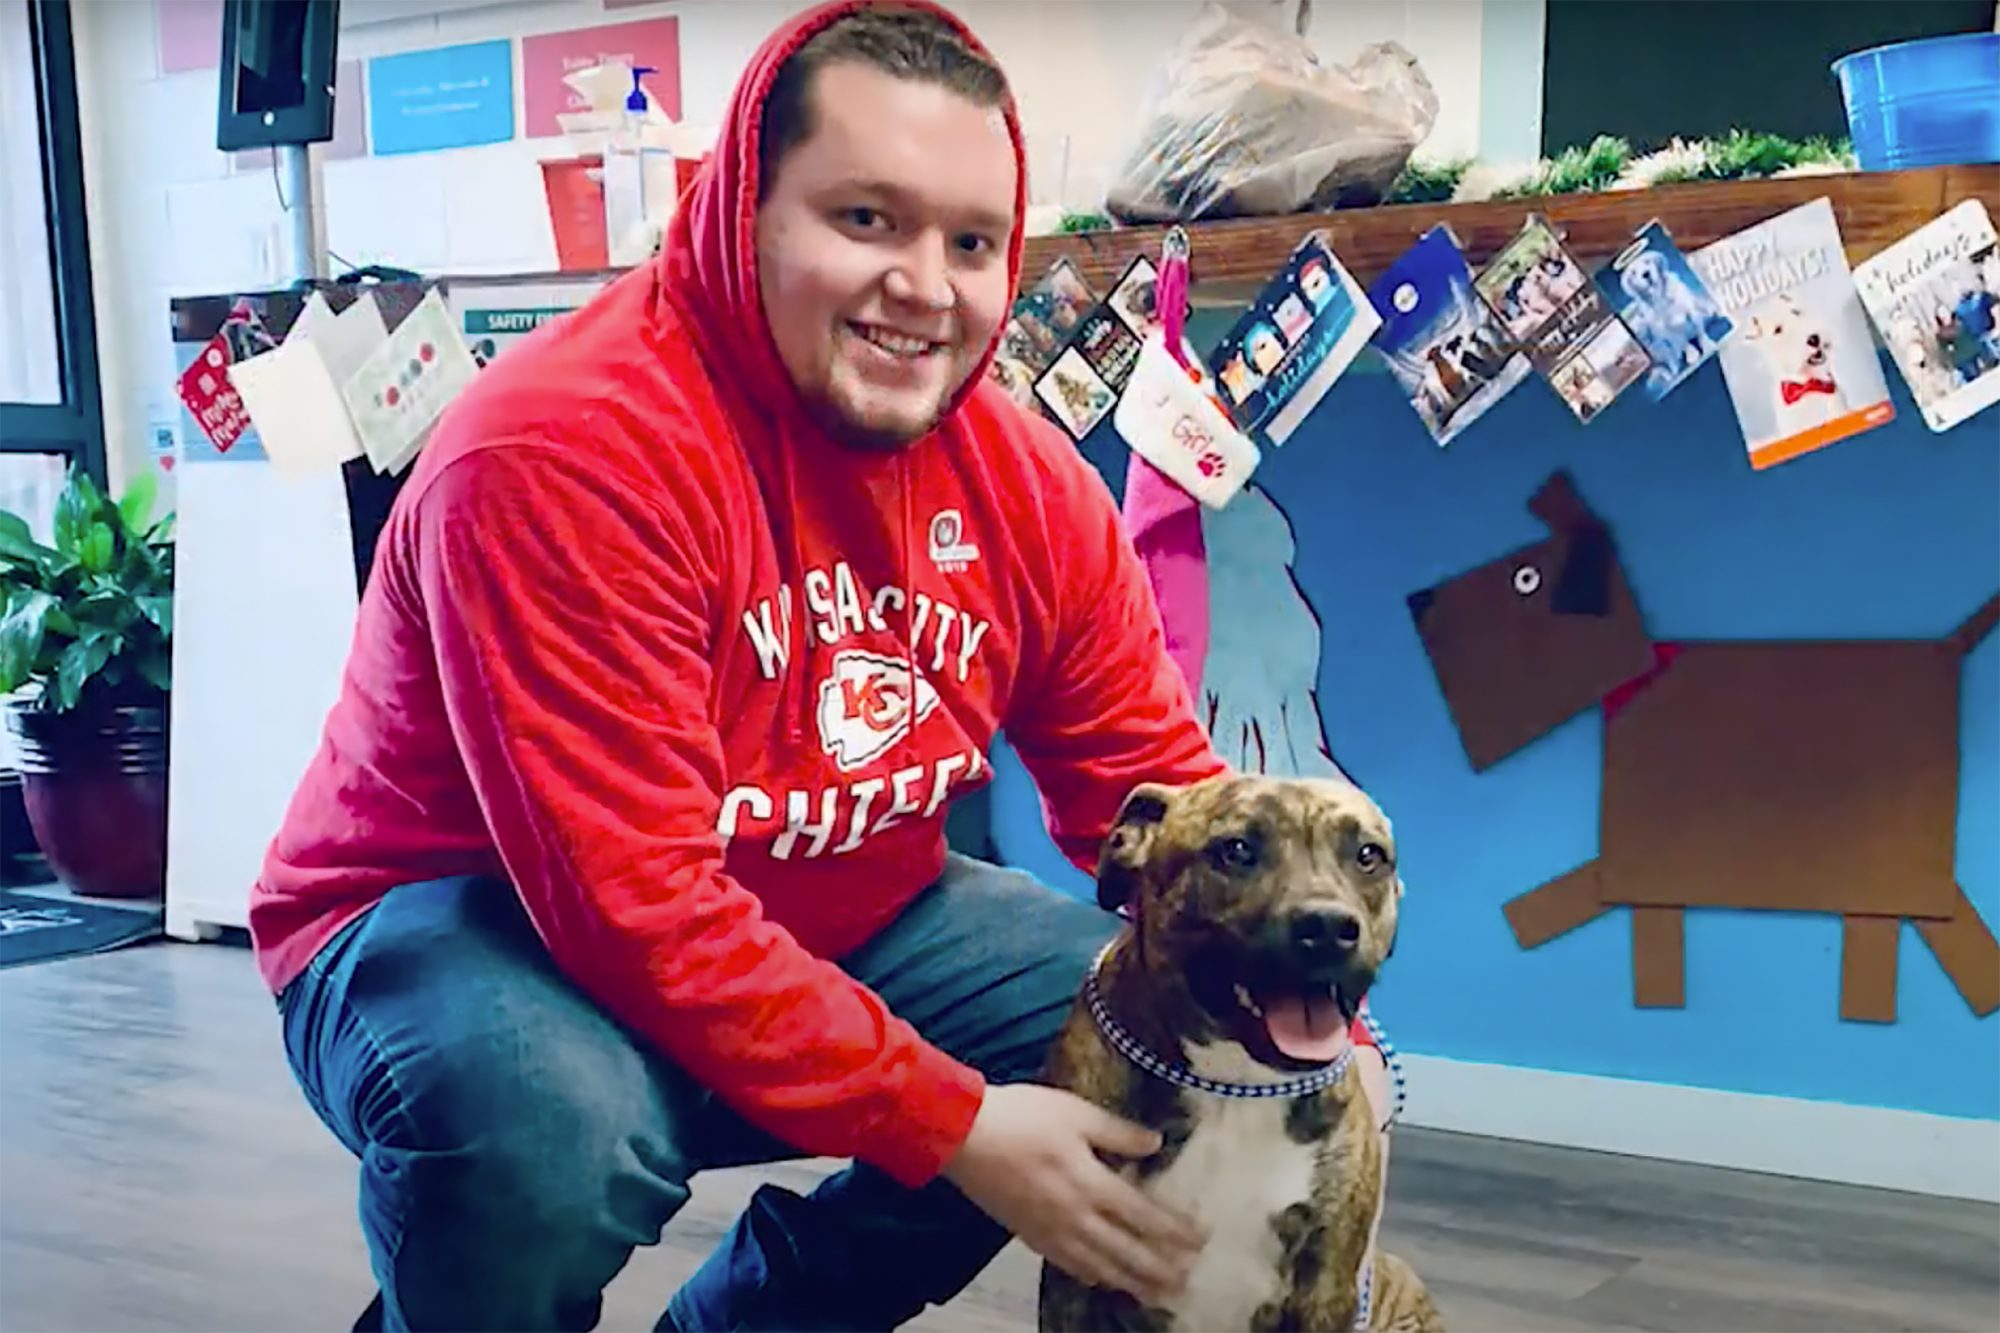 Man wearing Kansas City Chiefs sweatshirt embraces three-legged dog